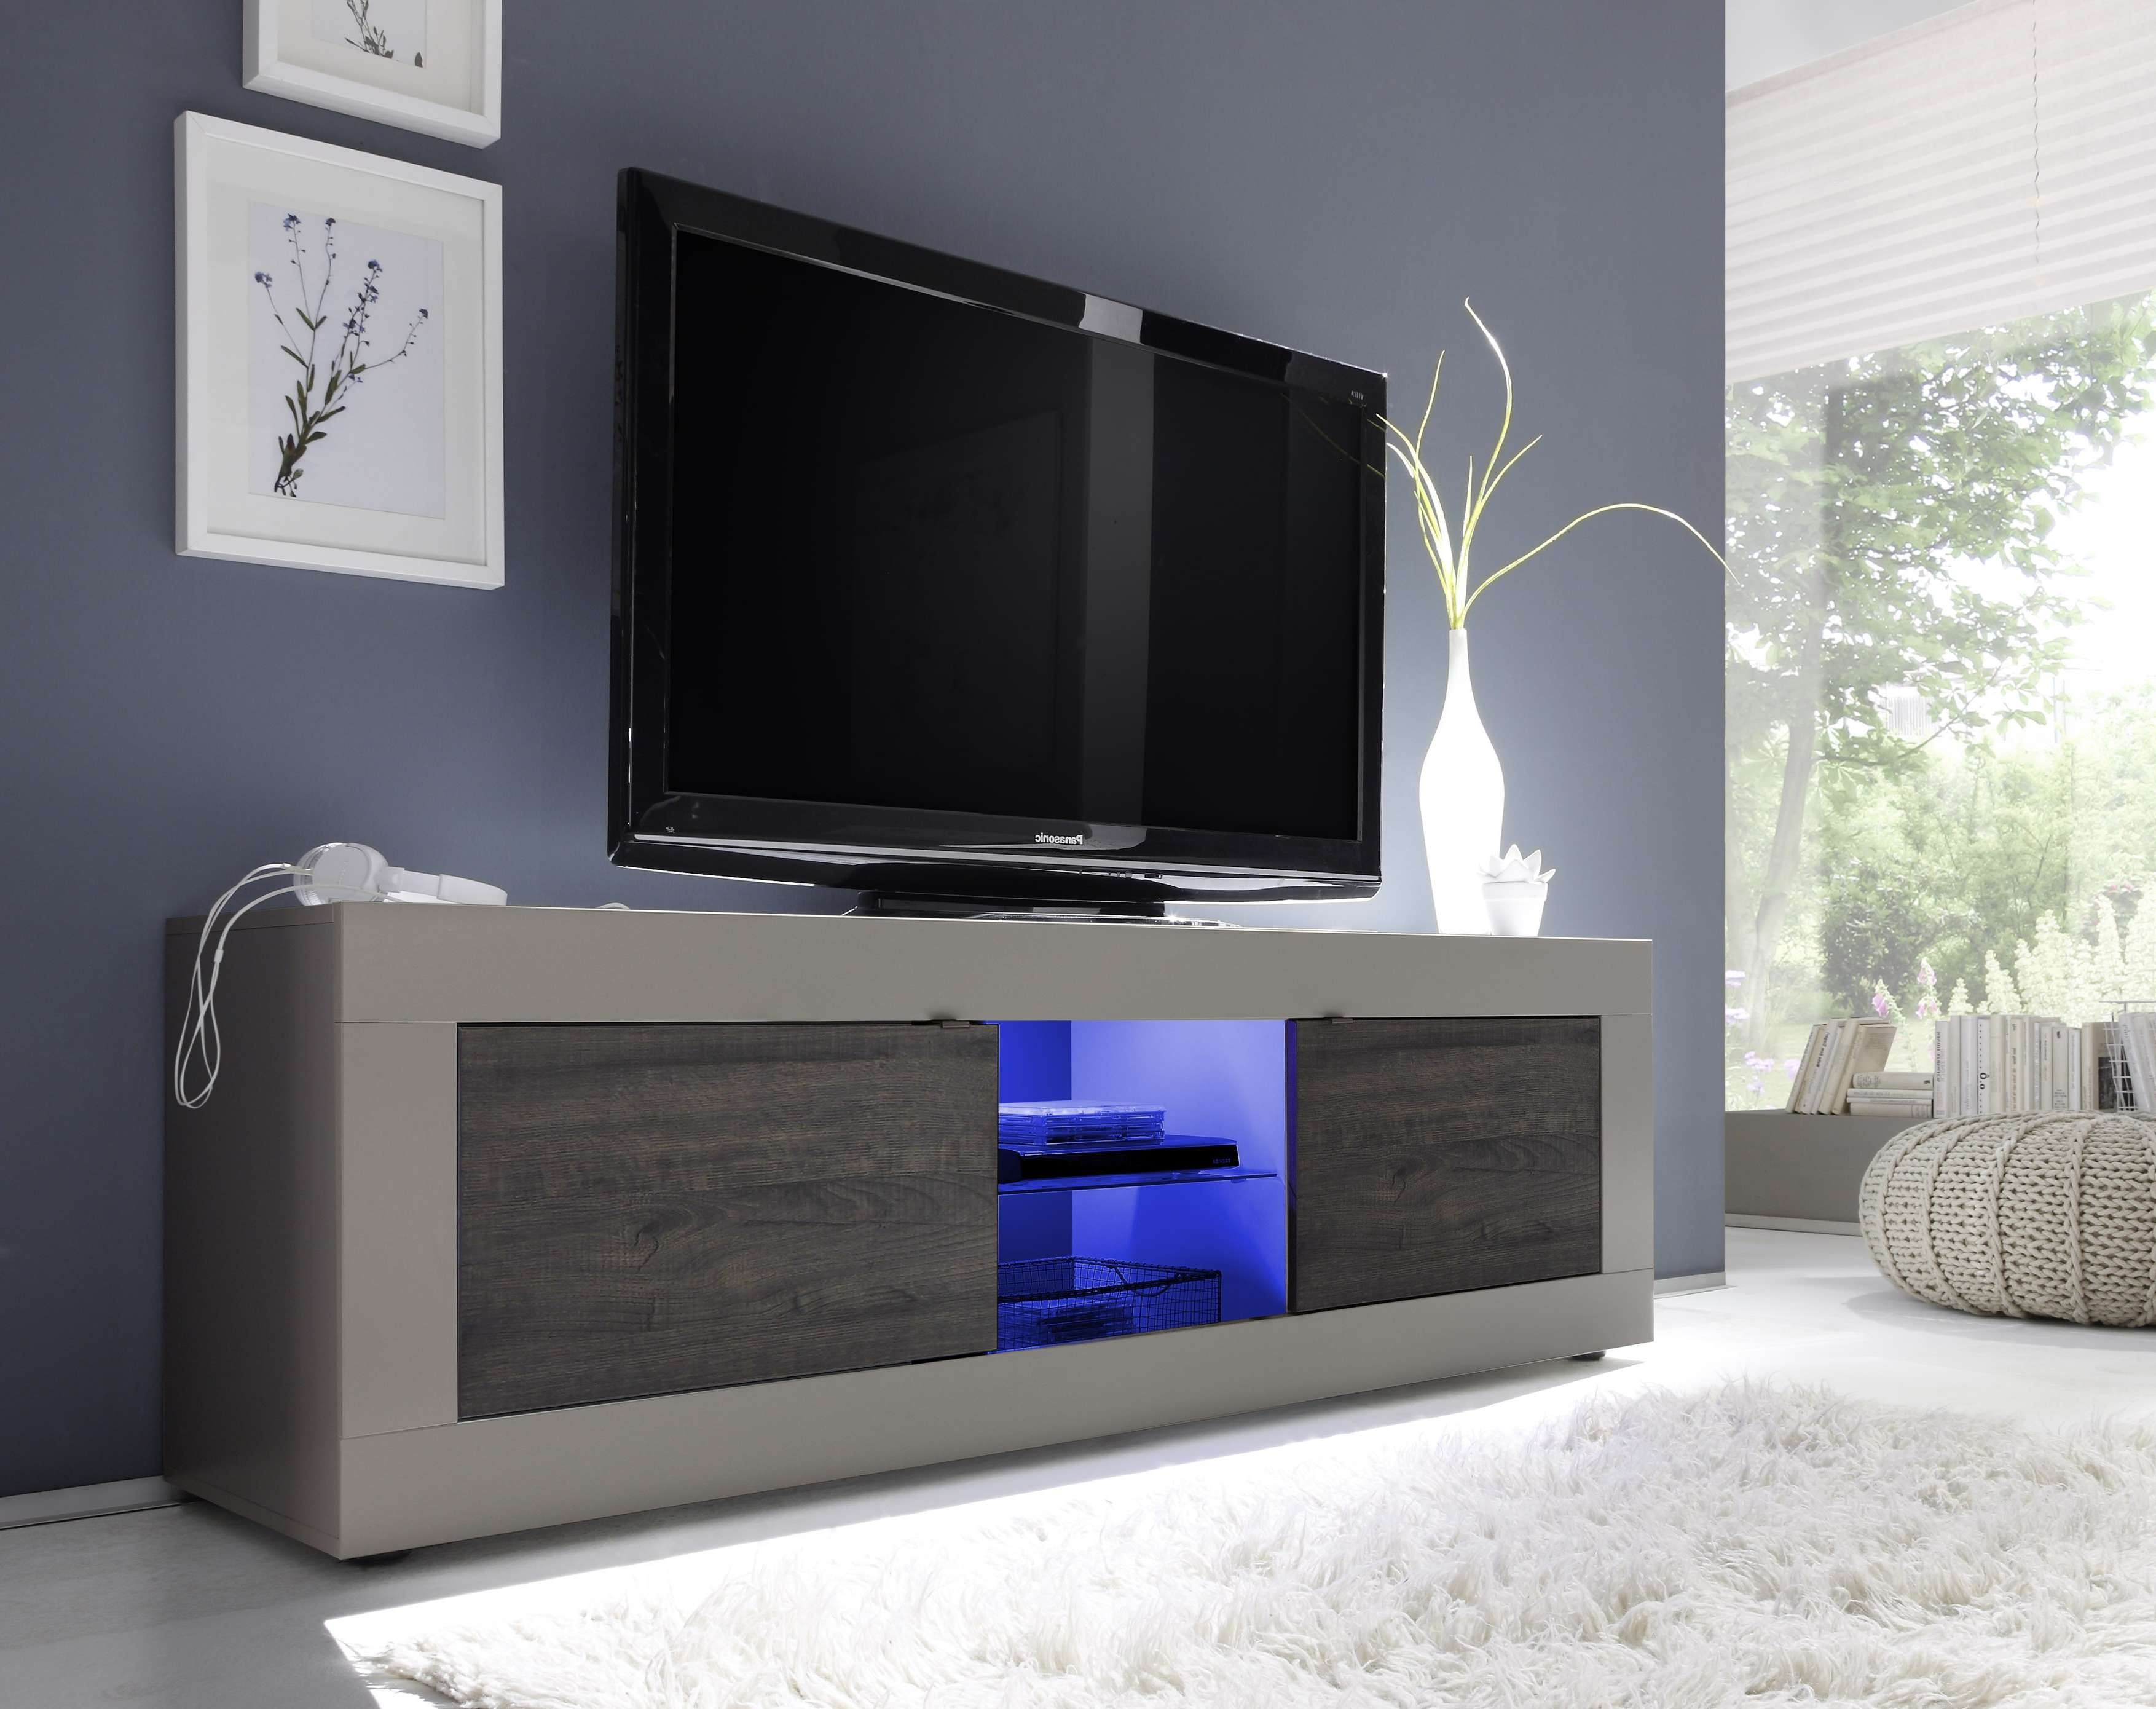 Basic Big Tv Stand, Beige + Wenge Buy Online At Best Price – Sohomod For Wenge Tv Cabinets (View 1 of 20)